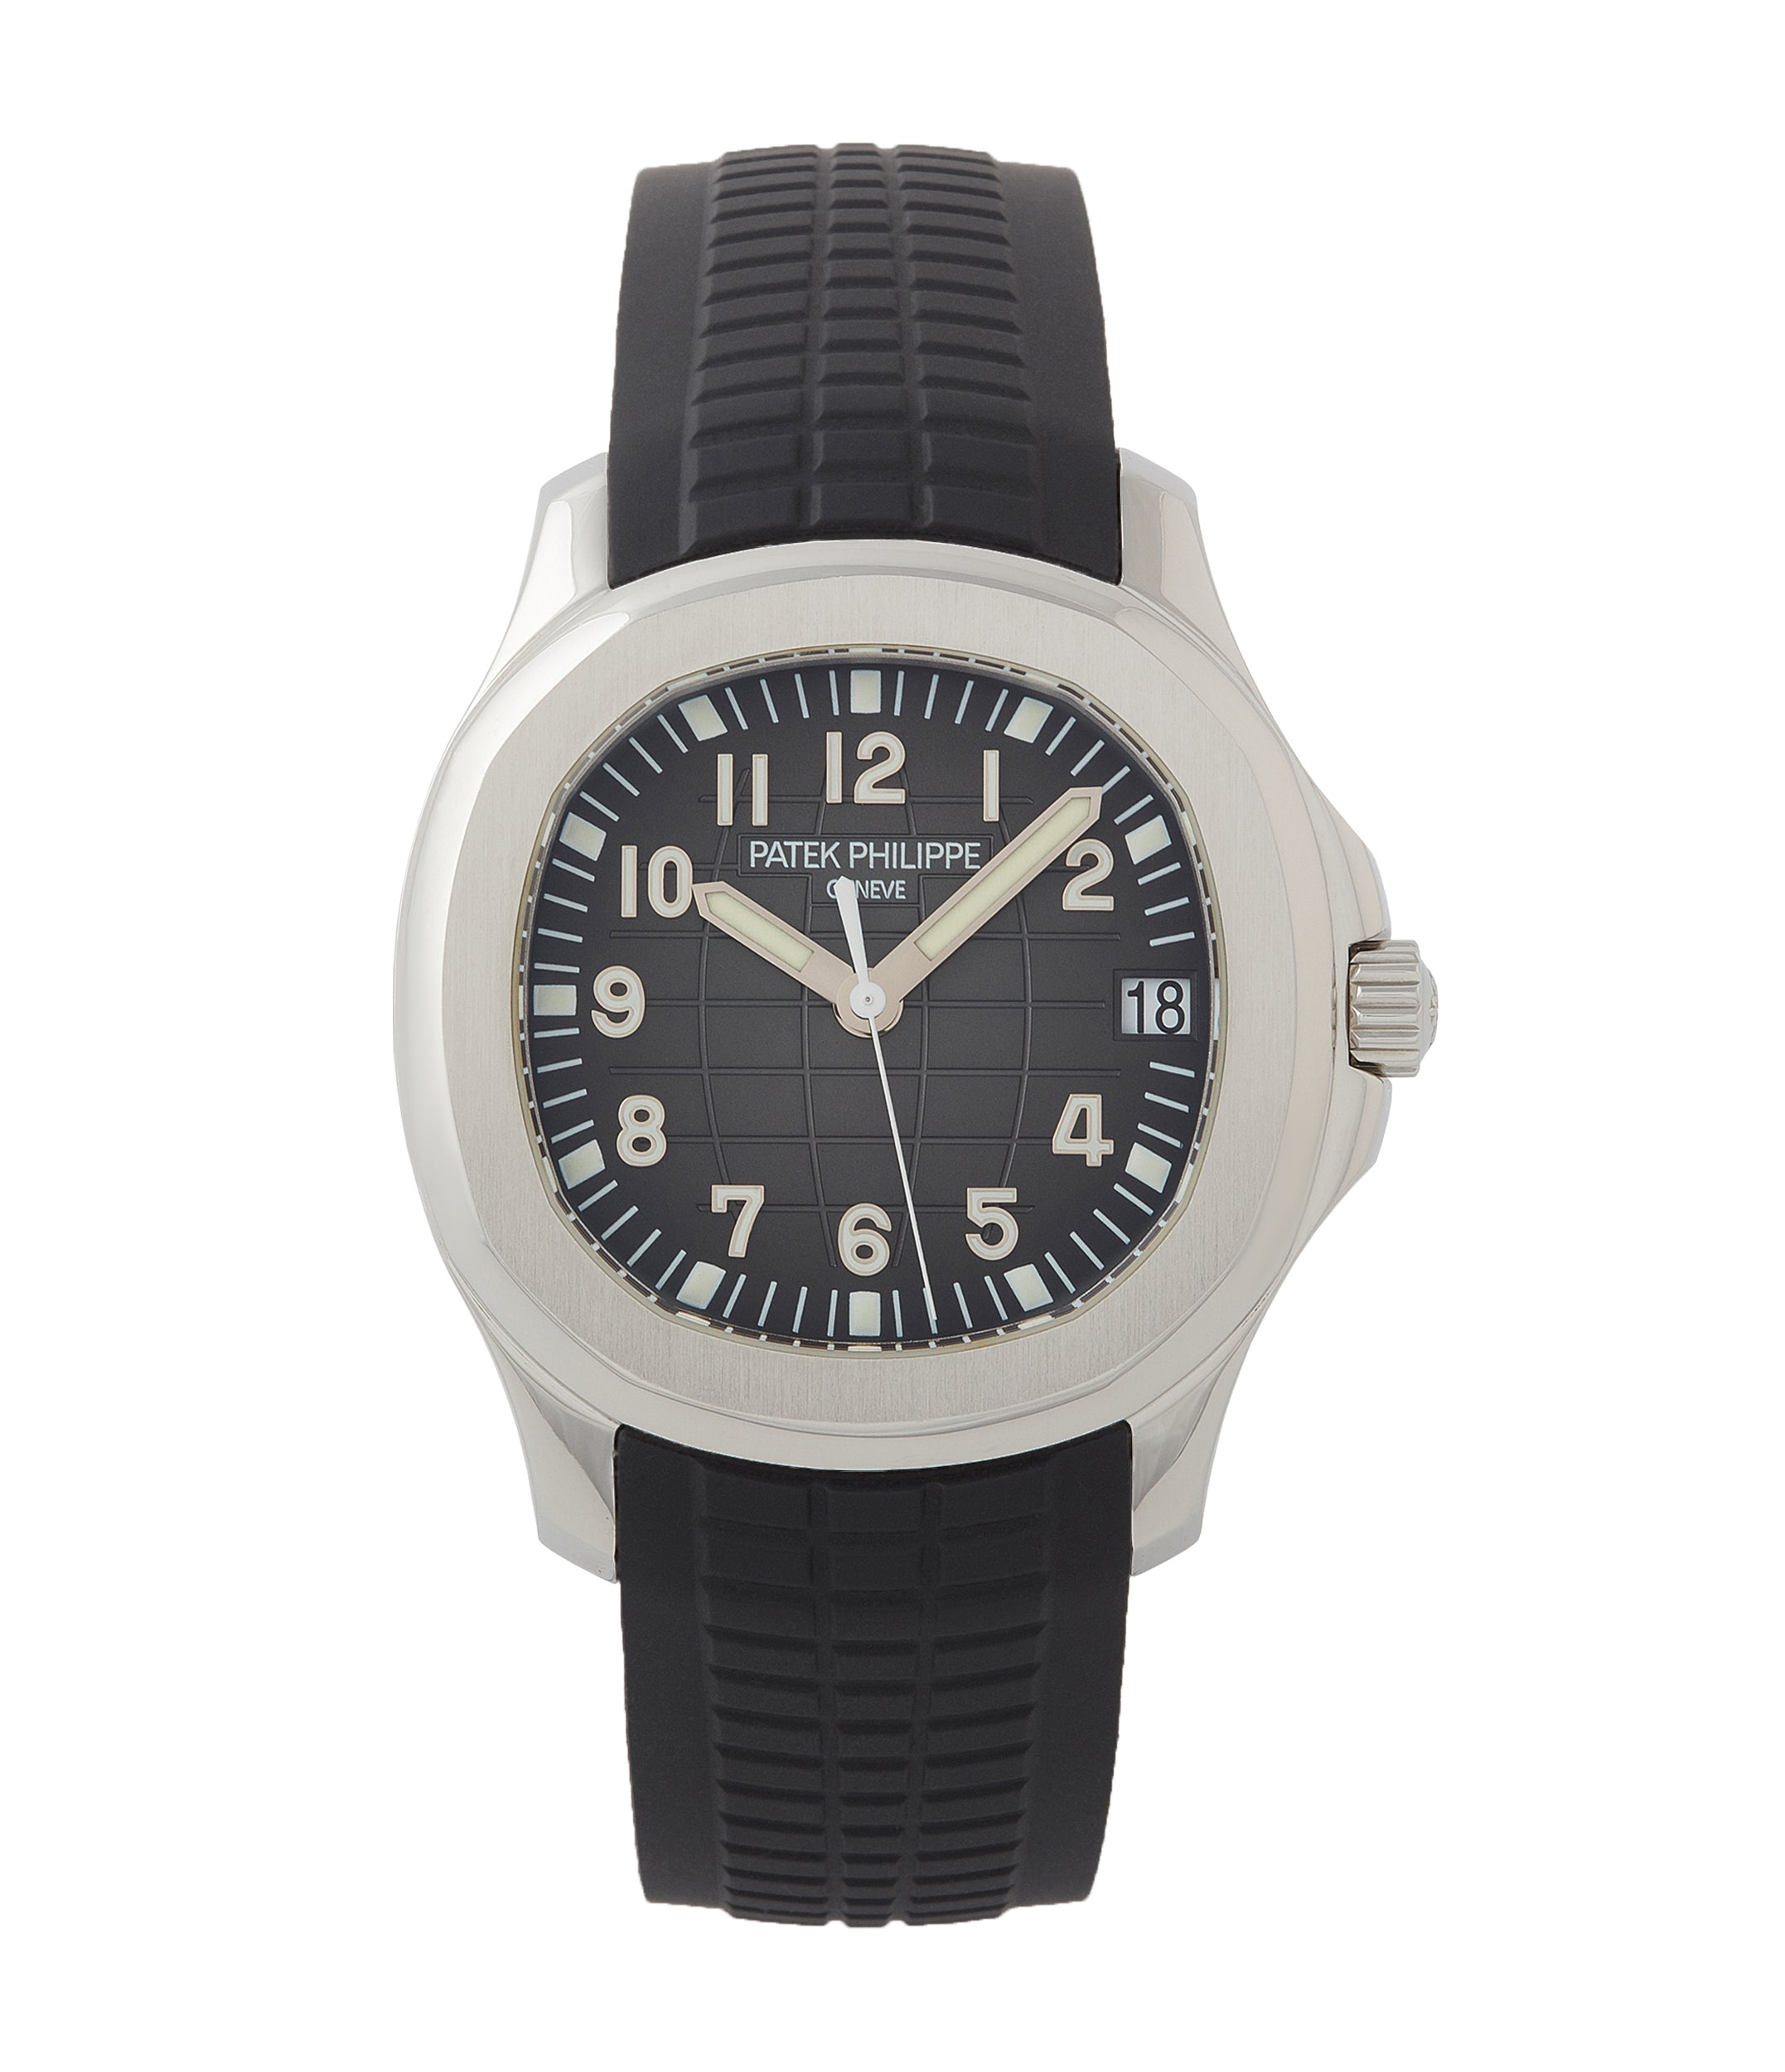 buying Patek Philippe Aquanaut 5165A-001 transitional steel sport watch for sale online at A Collected Man London UK specialist of rare watches